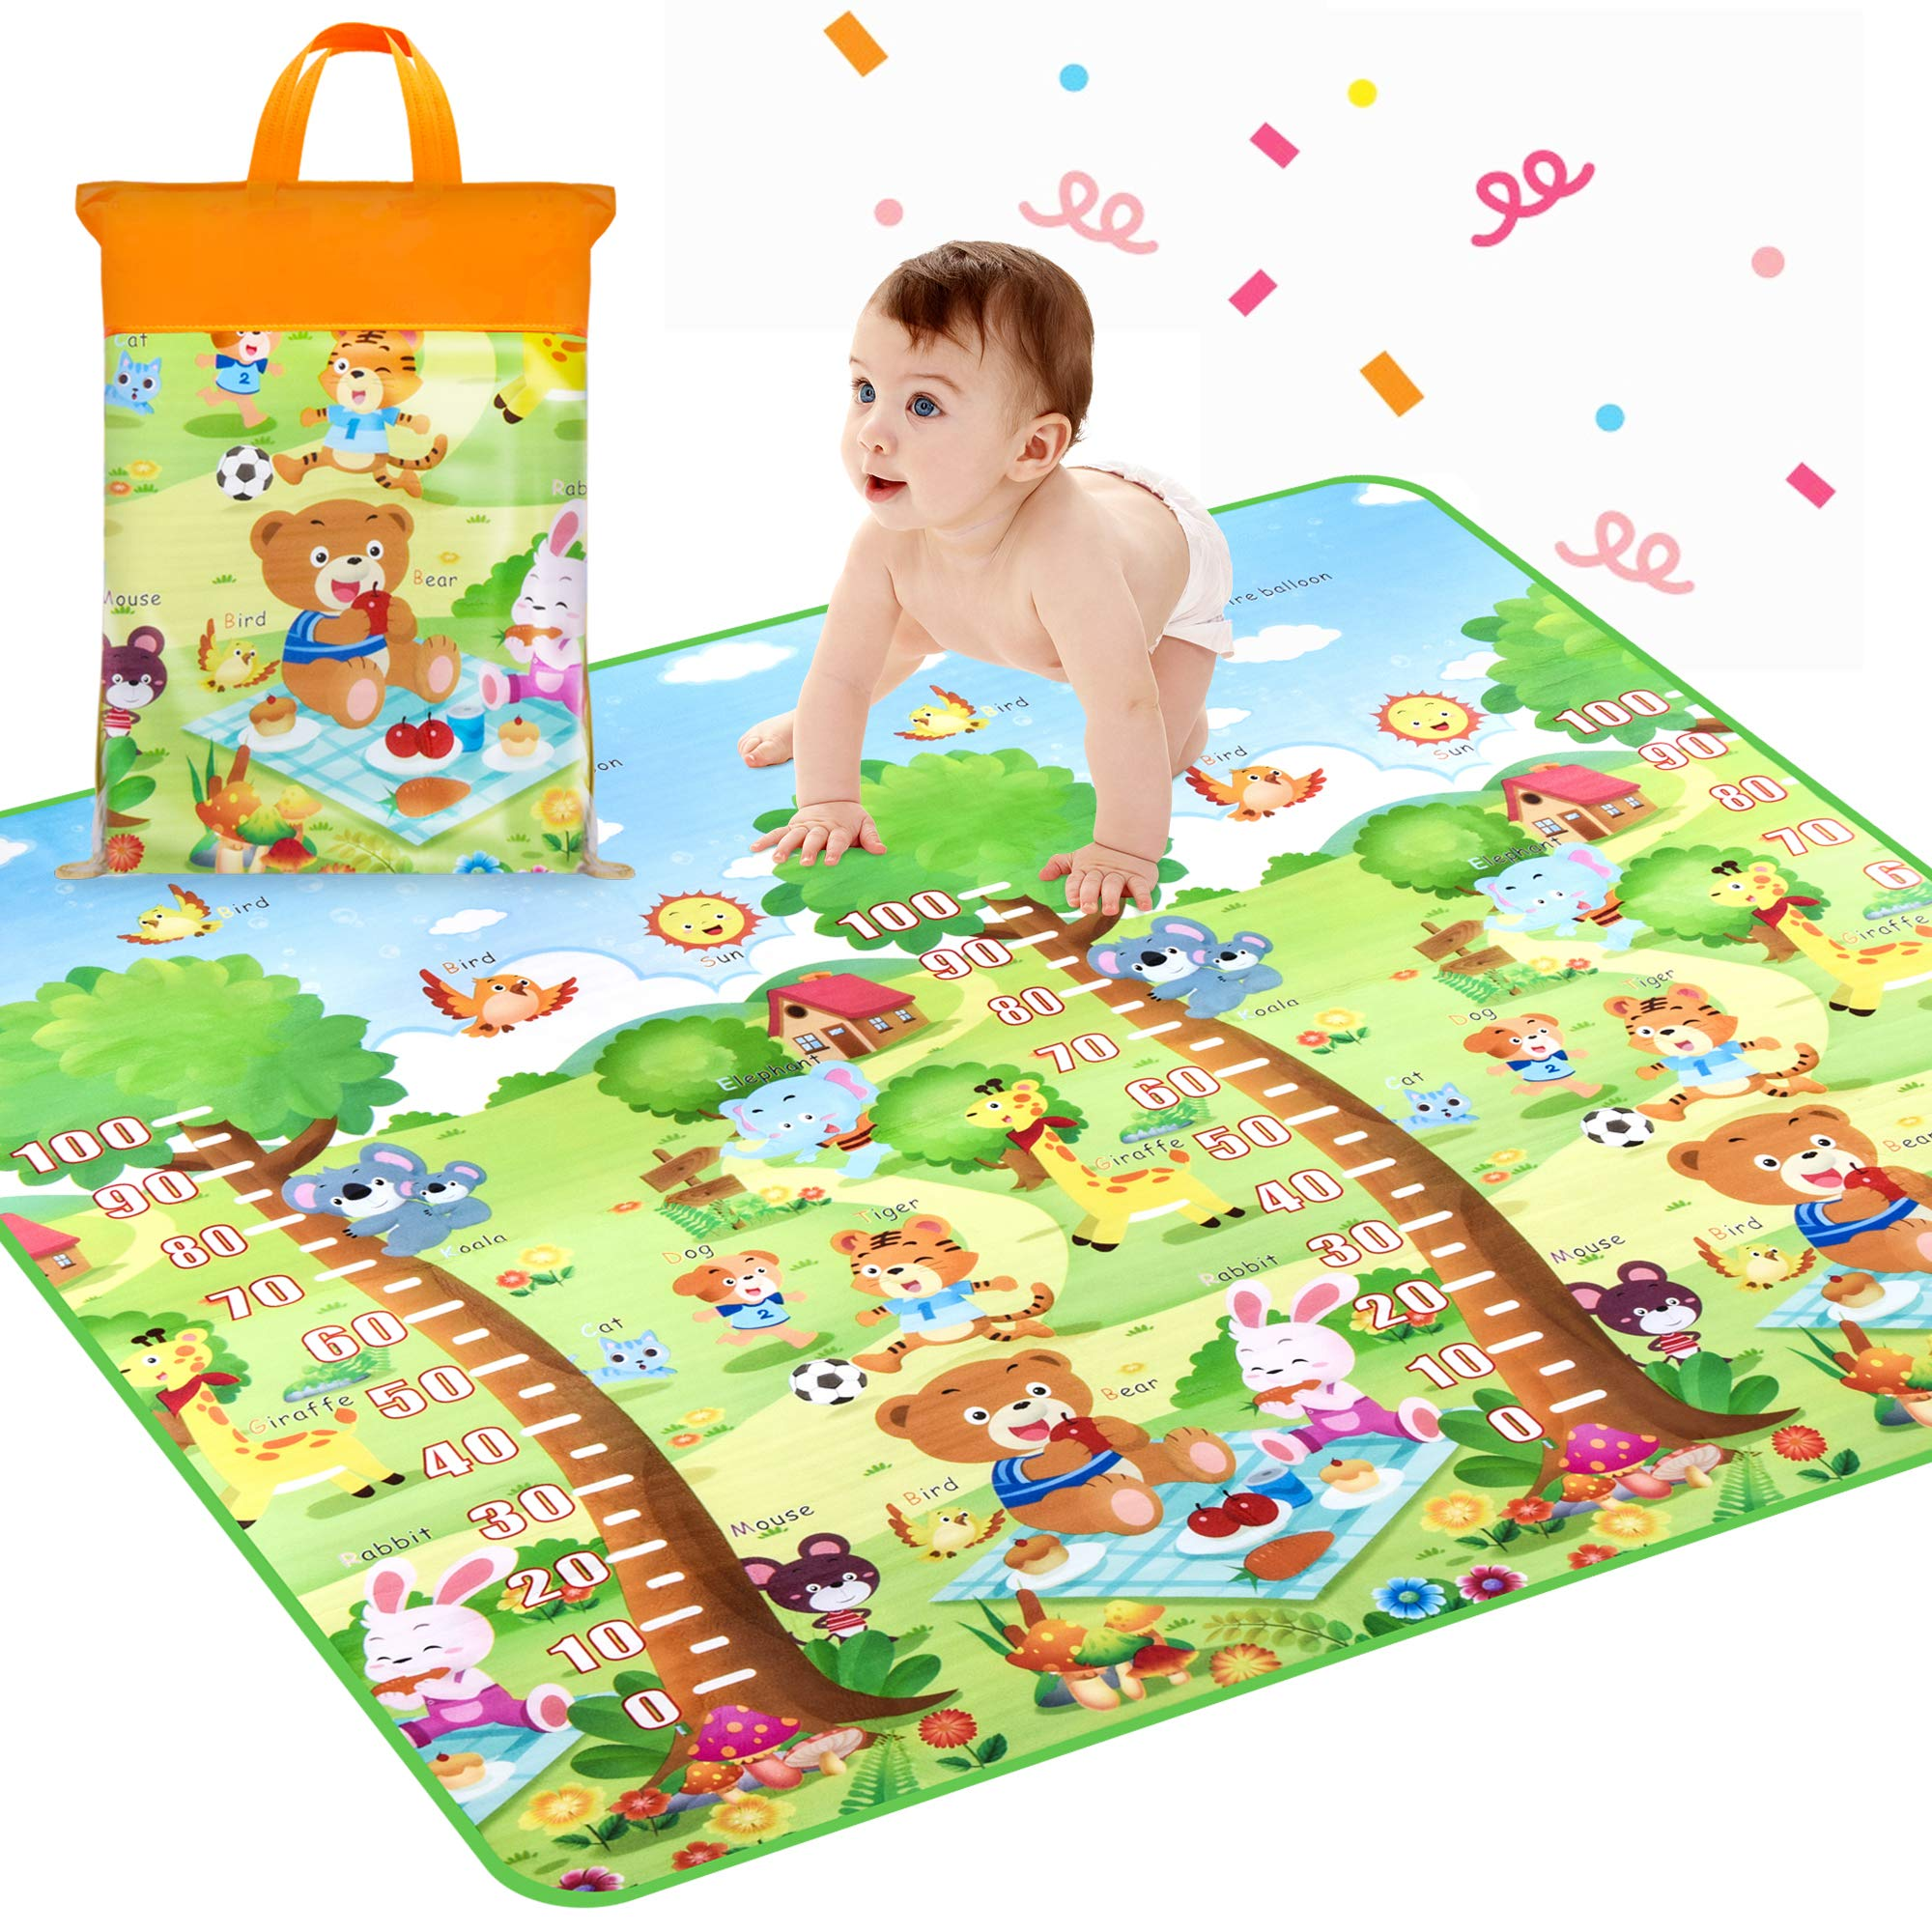 Baby Crawling Mat, Waterproof Non-Toxic Non-Slip Baby Floor Mat Educational Learning Area Rug for Kids and Children, Kids Activity Mat Reversible Thick Large 78.7'' x 71'' Playmat (Animals)